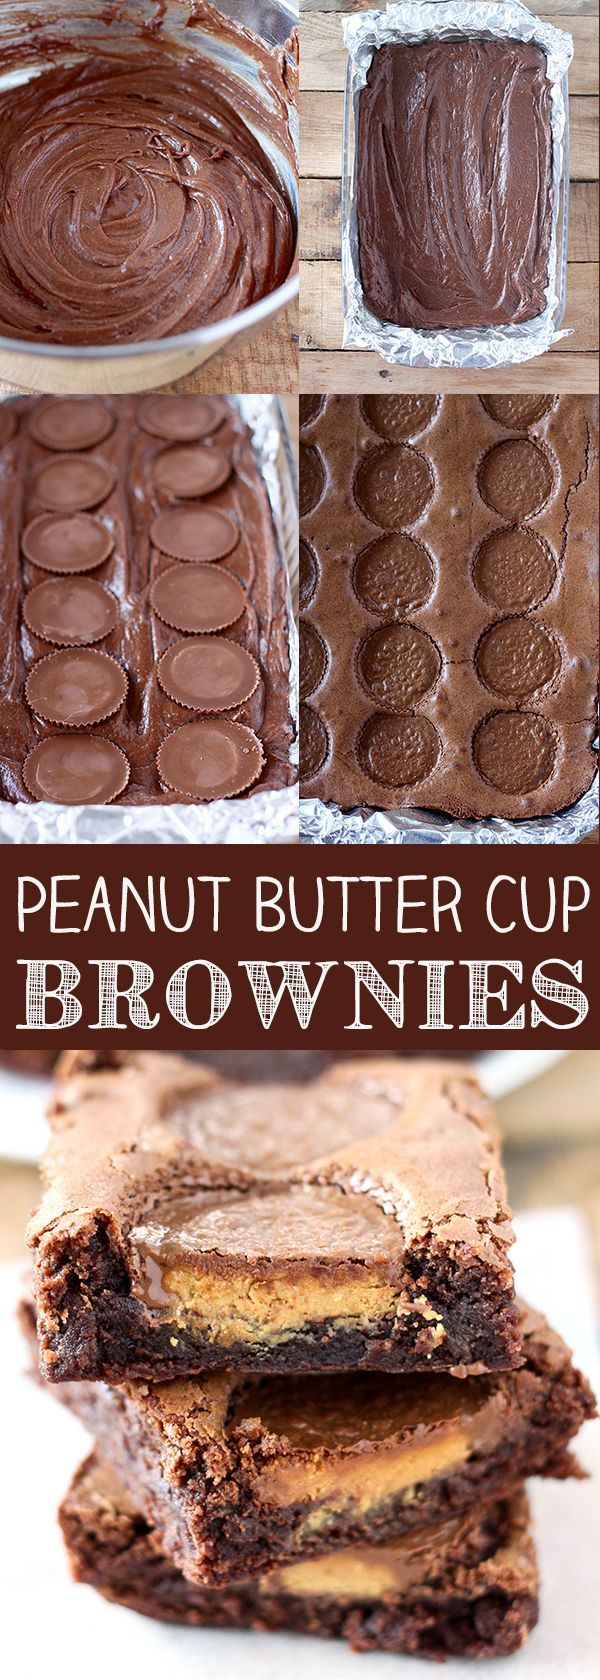 Reese's Peanut Butter Cup Brownies - homemade brownies with real peanut butter cups baked right in.